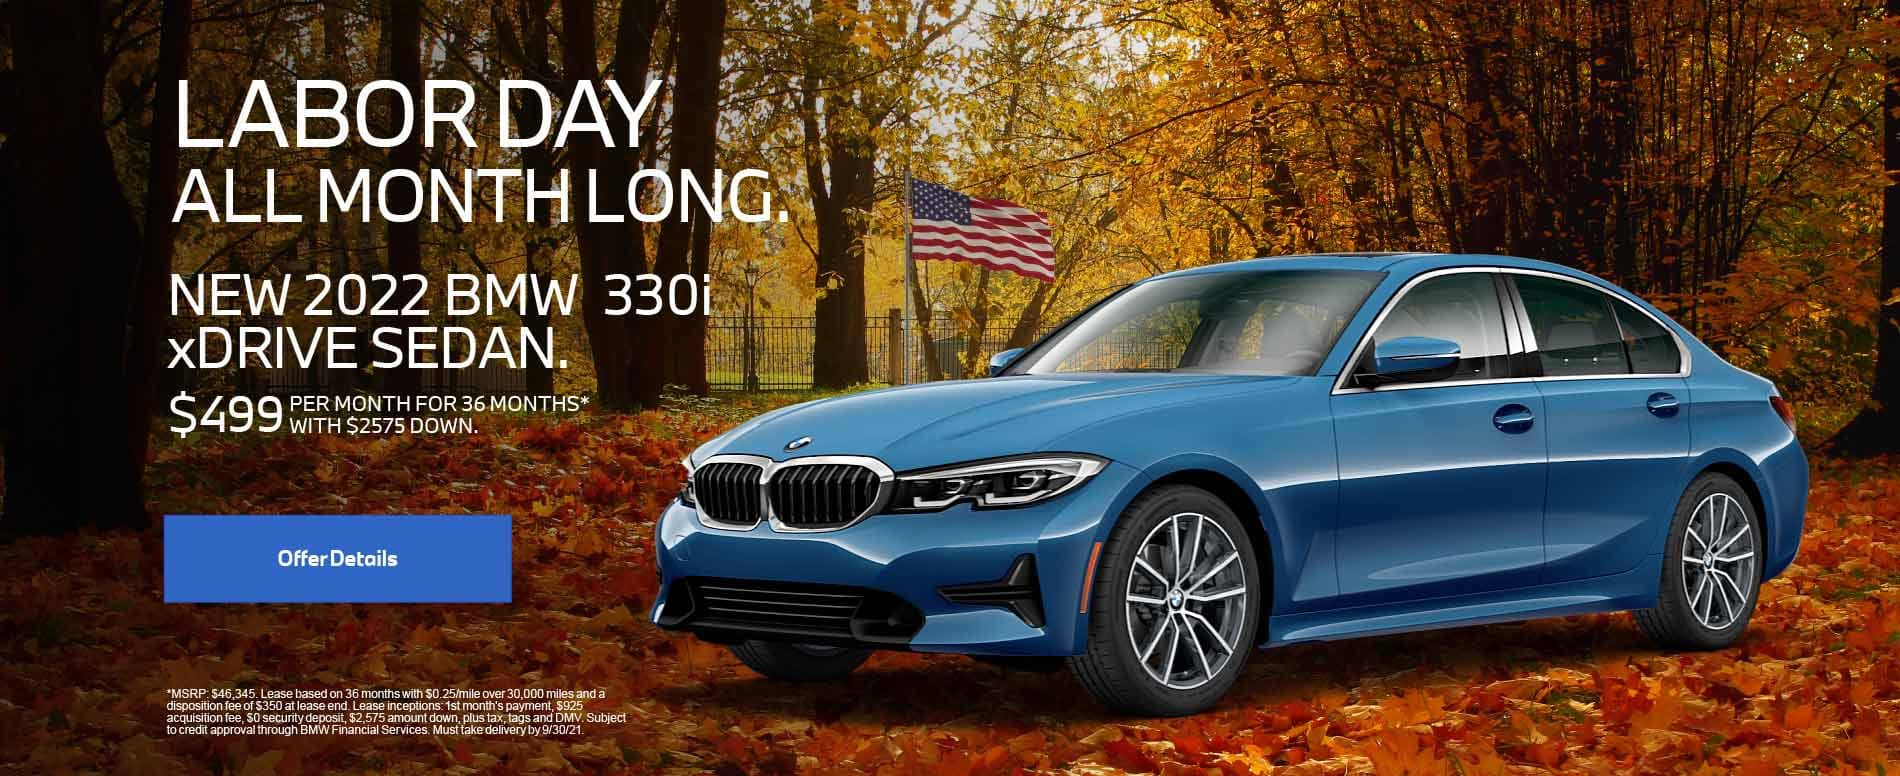 New 2022 BMW 330i xDRIVE SEDAN. $499 PER MONTH FOR 36 months with $2,575 Down.